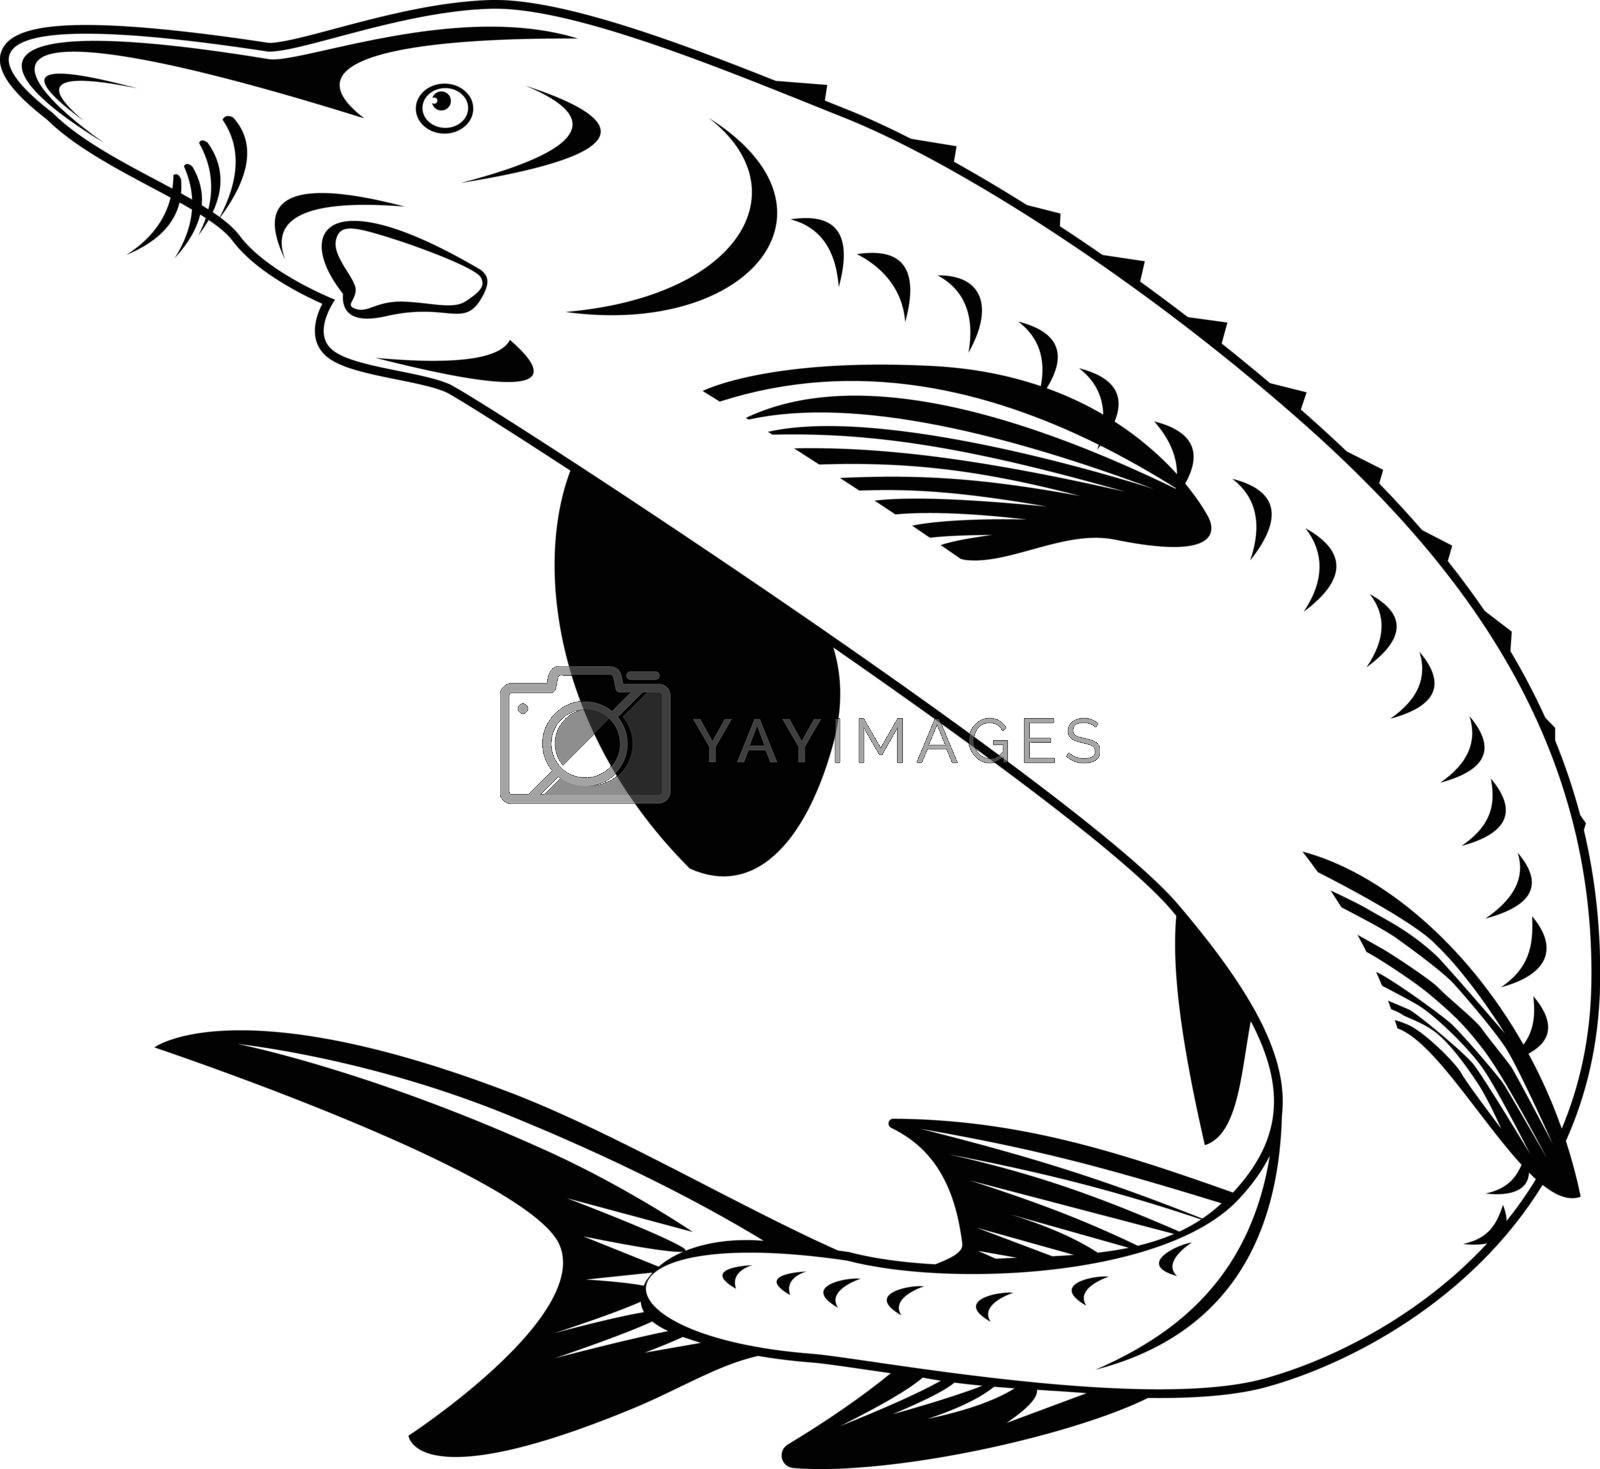 Retro woodcut style illustration of an Atlantic sturgeon Acipenser oxyrinchus oxyrinchus, a member of the family Acipenseridae, swimming up done in black and white.